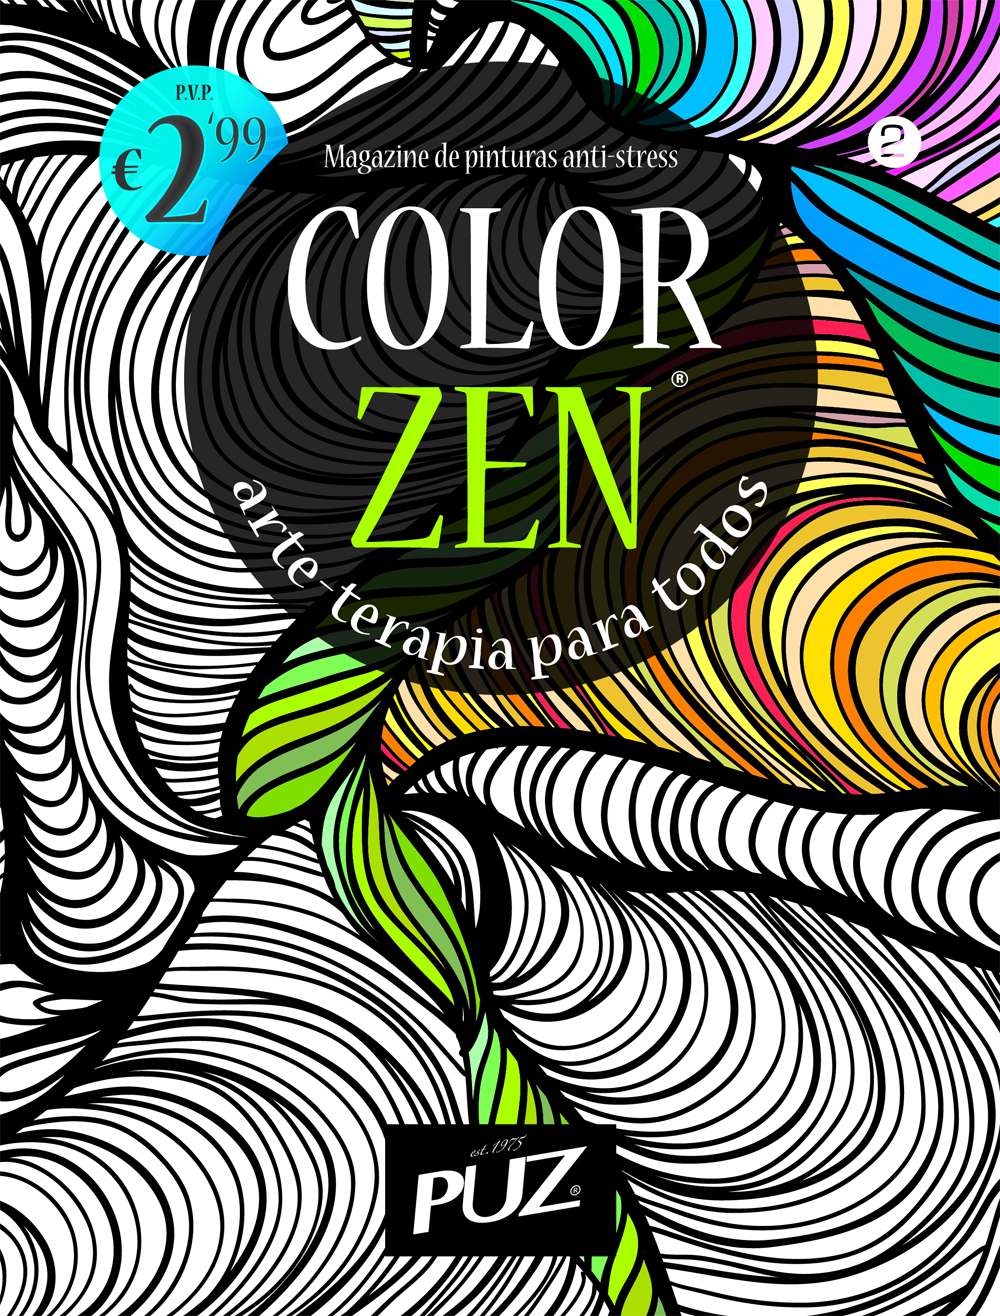 Color zen magazine - Color Zen Nr 2 Magazine De Pinturas Anti Stress Da Puz Arte